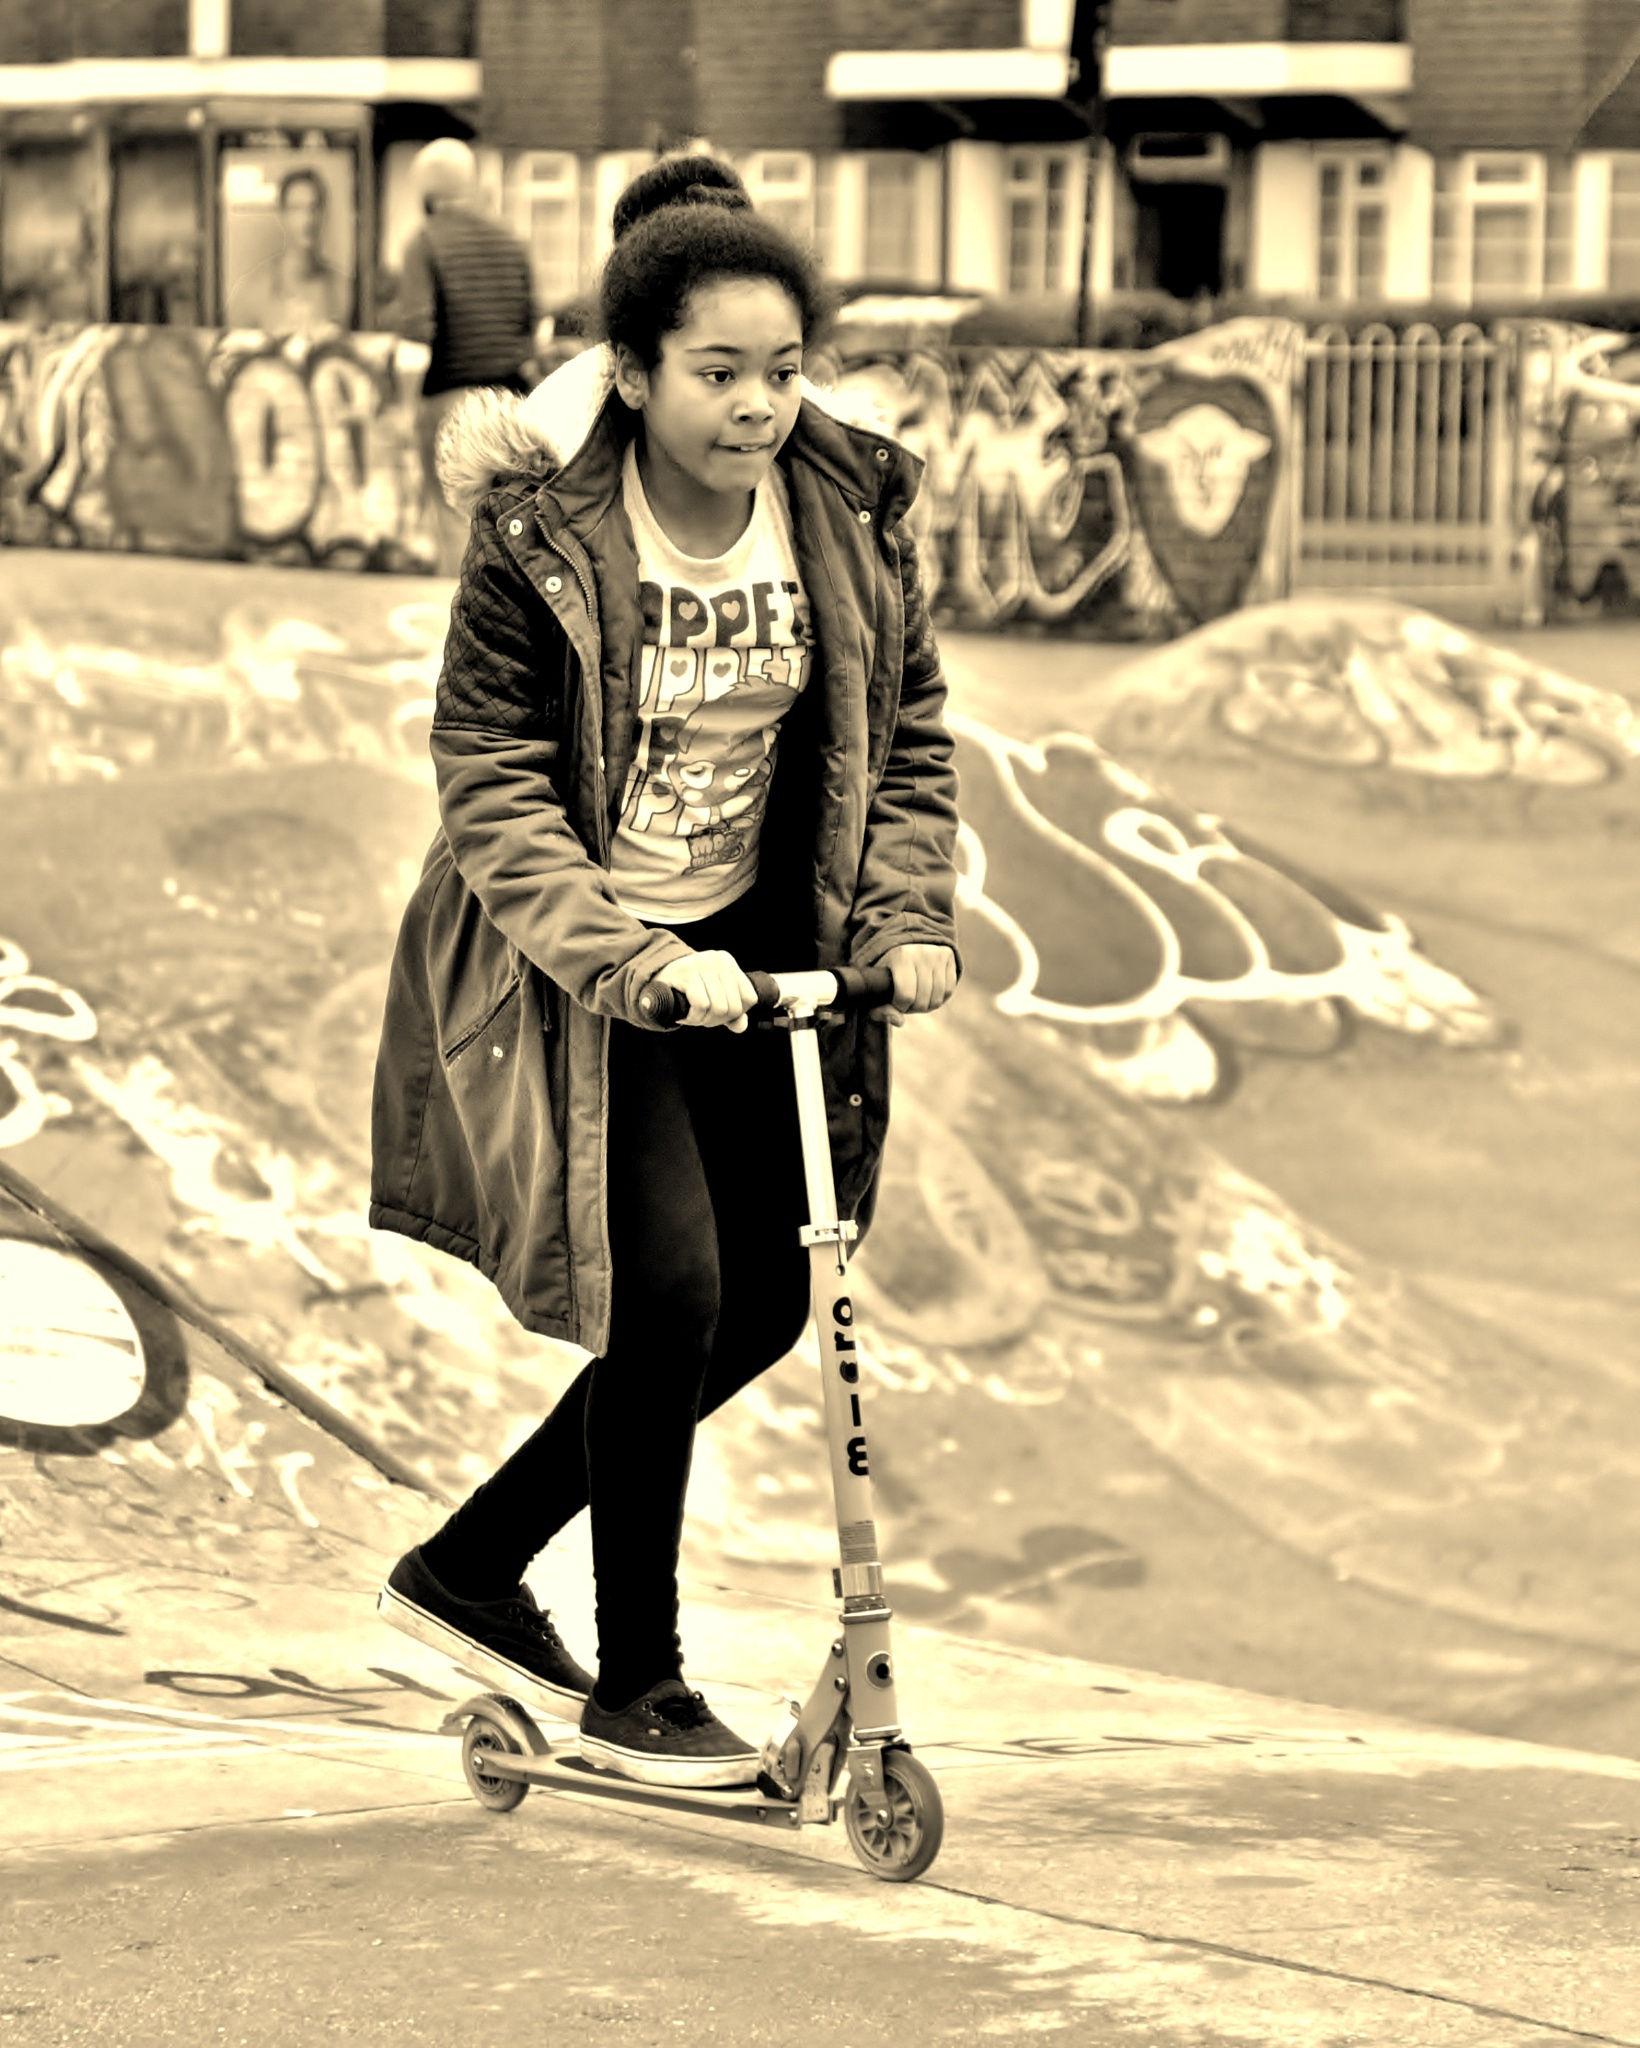 London - Brixton - Girl - Scooter - Sepia by paul.hosker